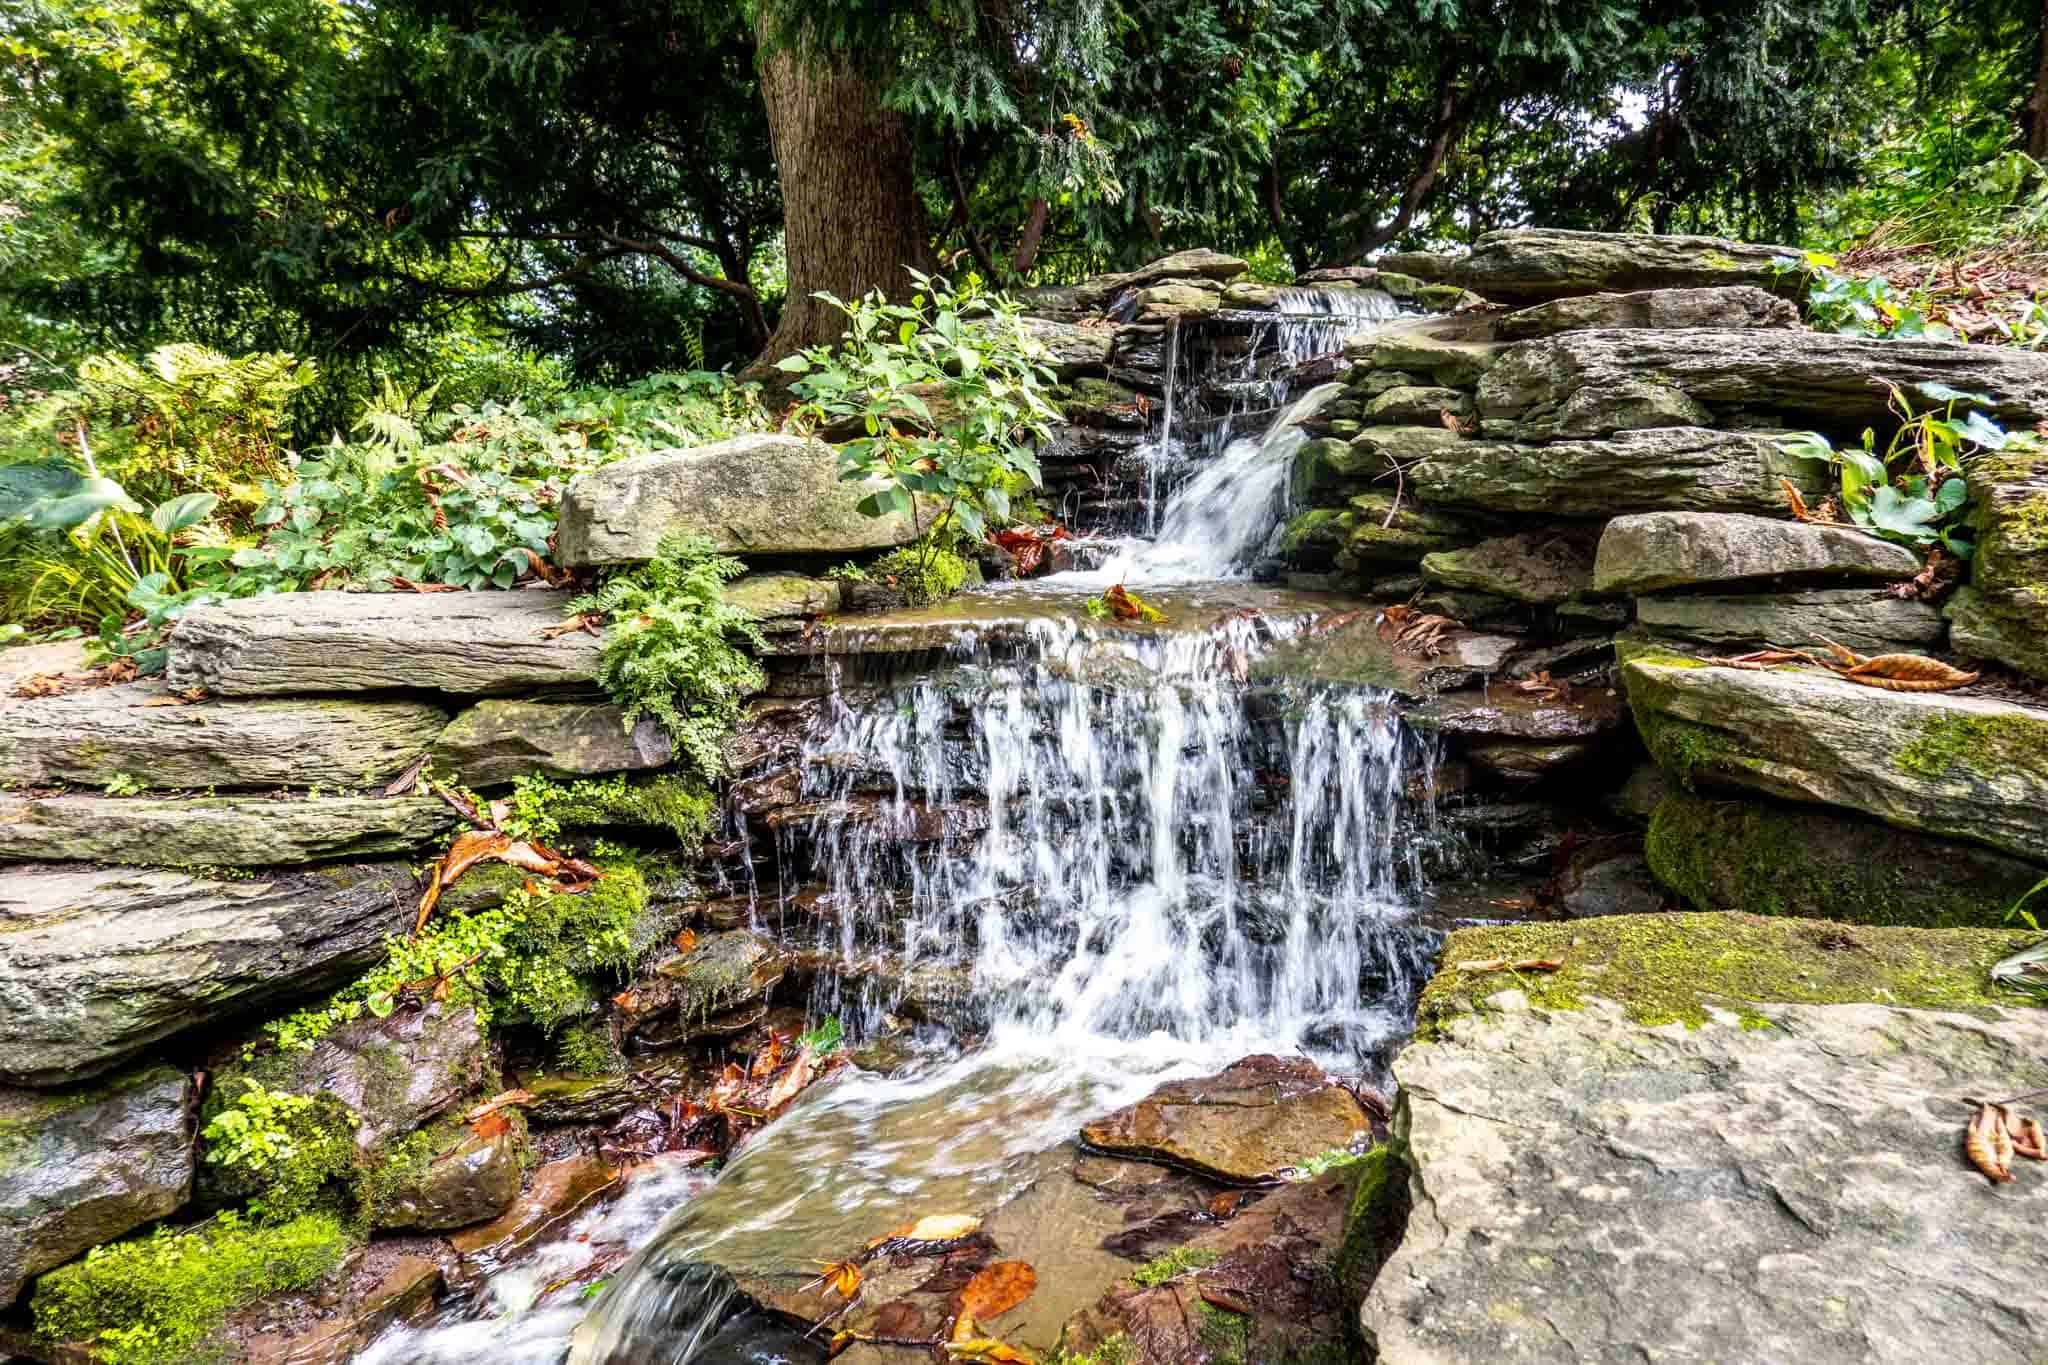 Water pouring over the rocks of a small waterfall surrounded by plants